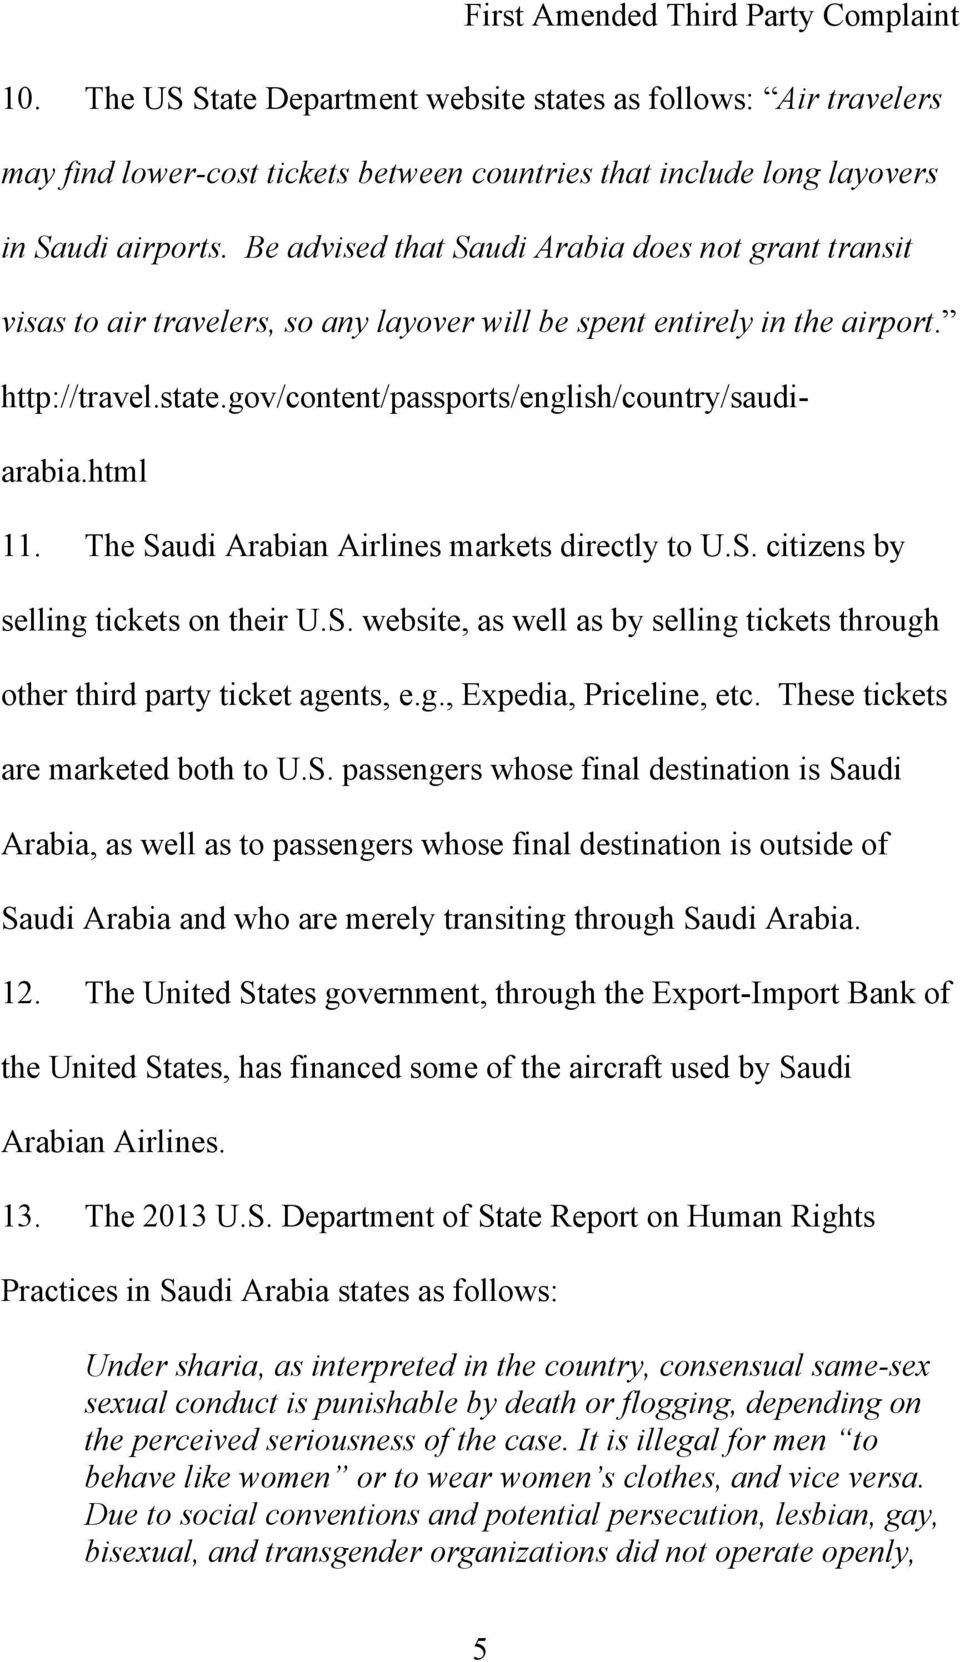 html 11. The Saudi Arabian Airlines markets directly to U.S. citizens by selling tickets on their U.S. website, as well as by selling tickets through other third party ticket agents, e.g., Expedia, Priceline, etc.